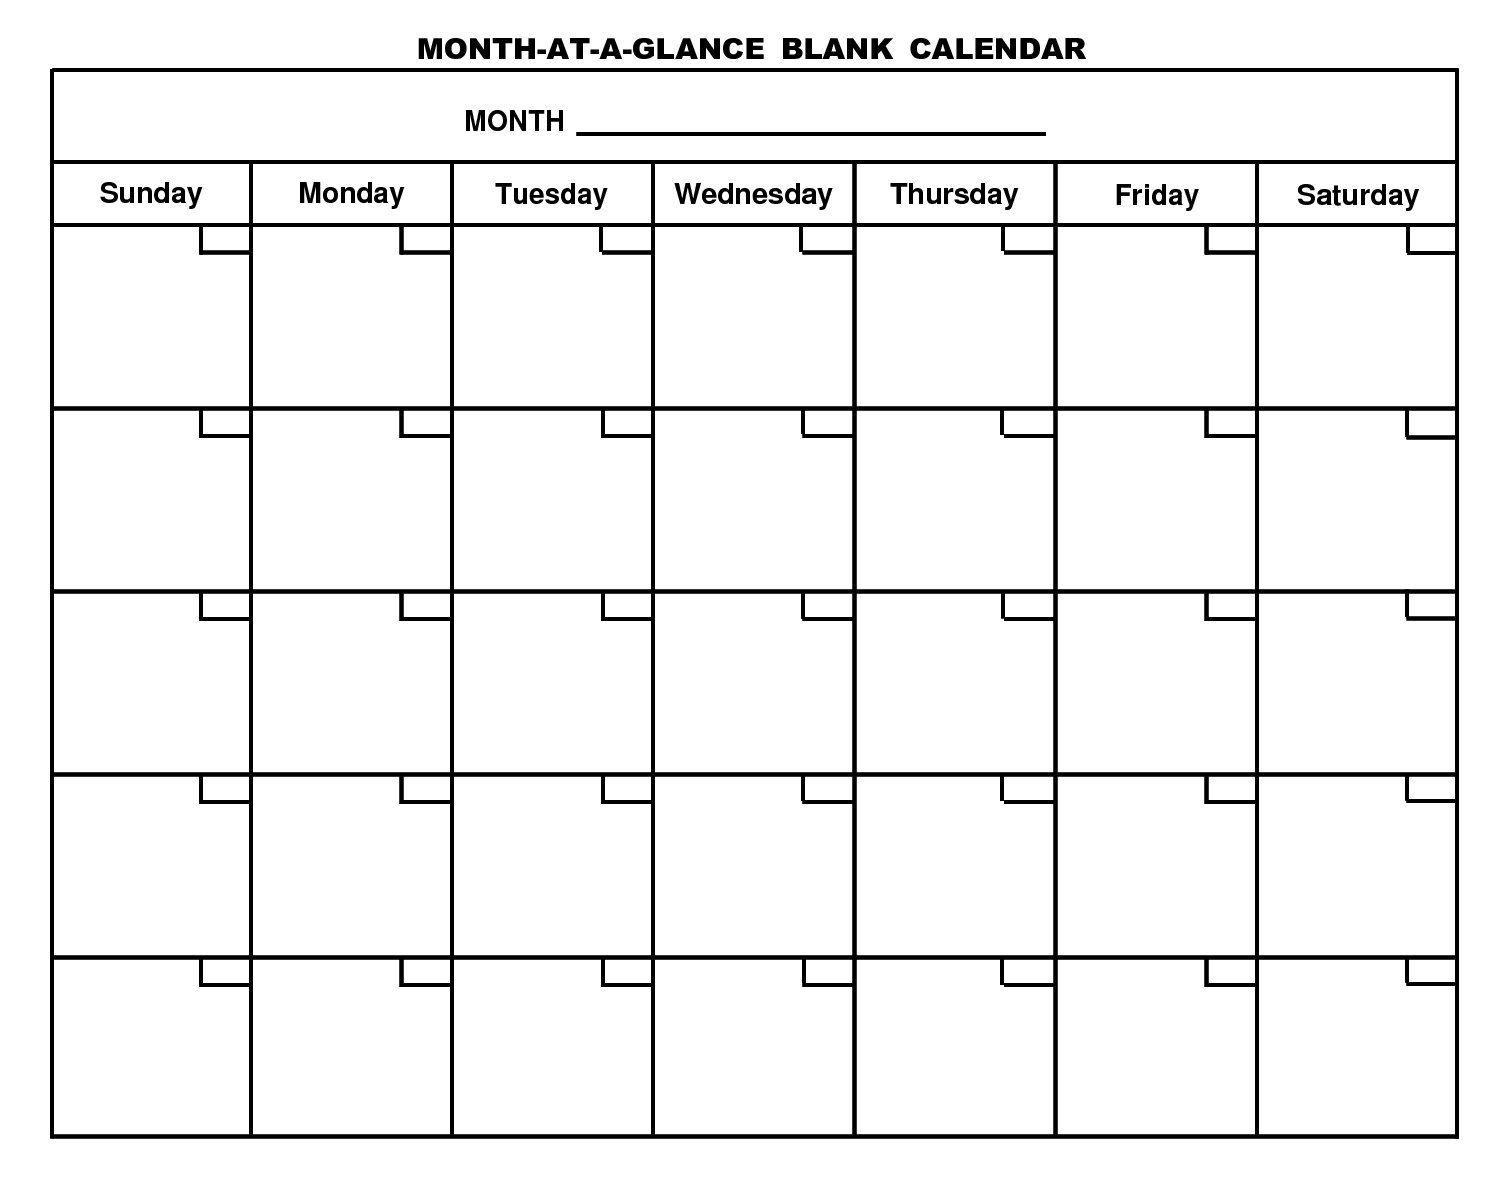 Monthly Schedule Ate Meal Planner Pdf Calendar Australia Blank Free in Pdf Blank Calendar Without Months